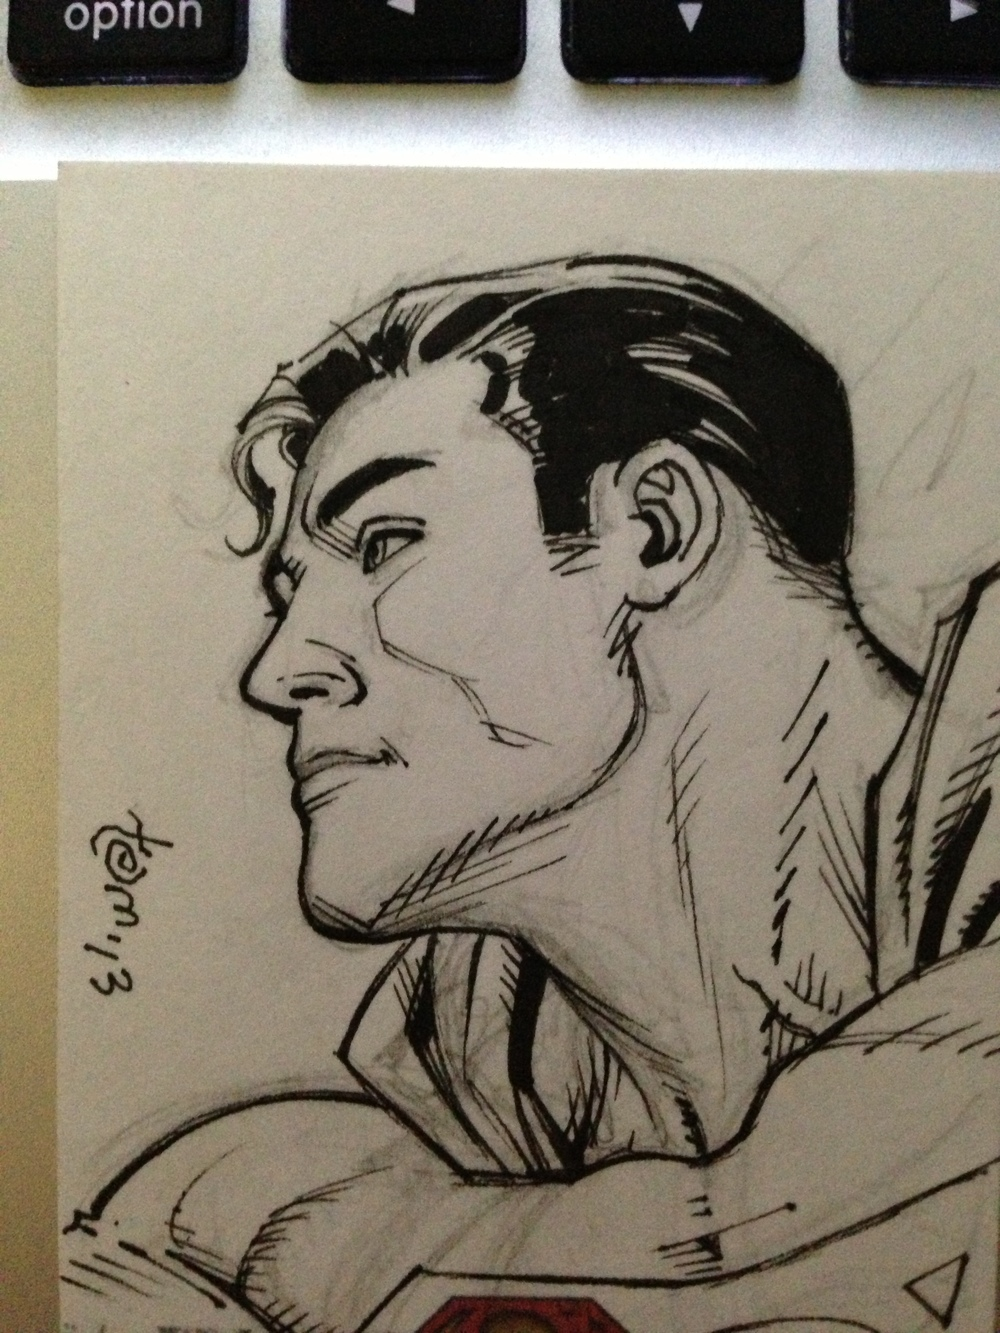 Superman head card sketch for Ryan, winner of another   Art Samura  i workshop contest.